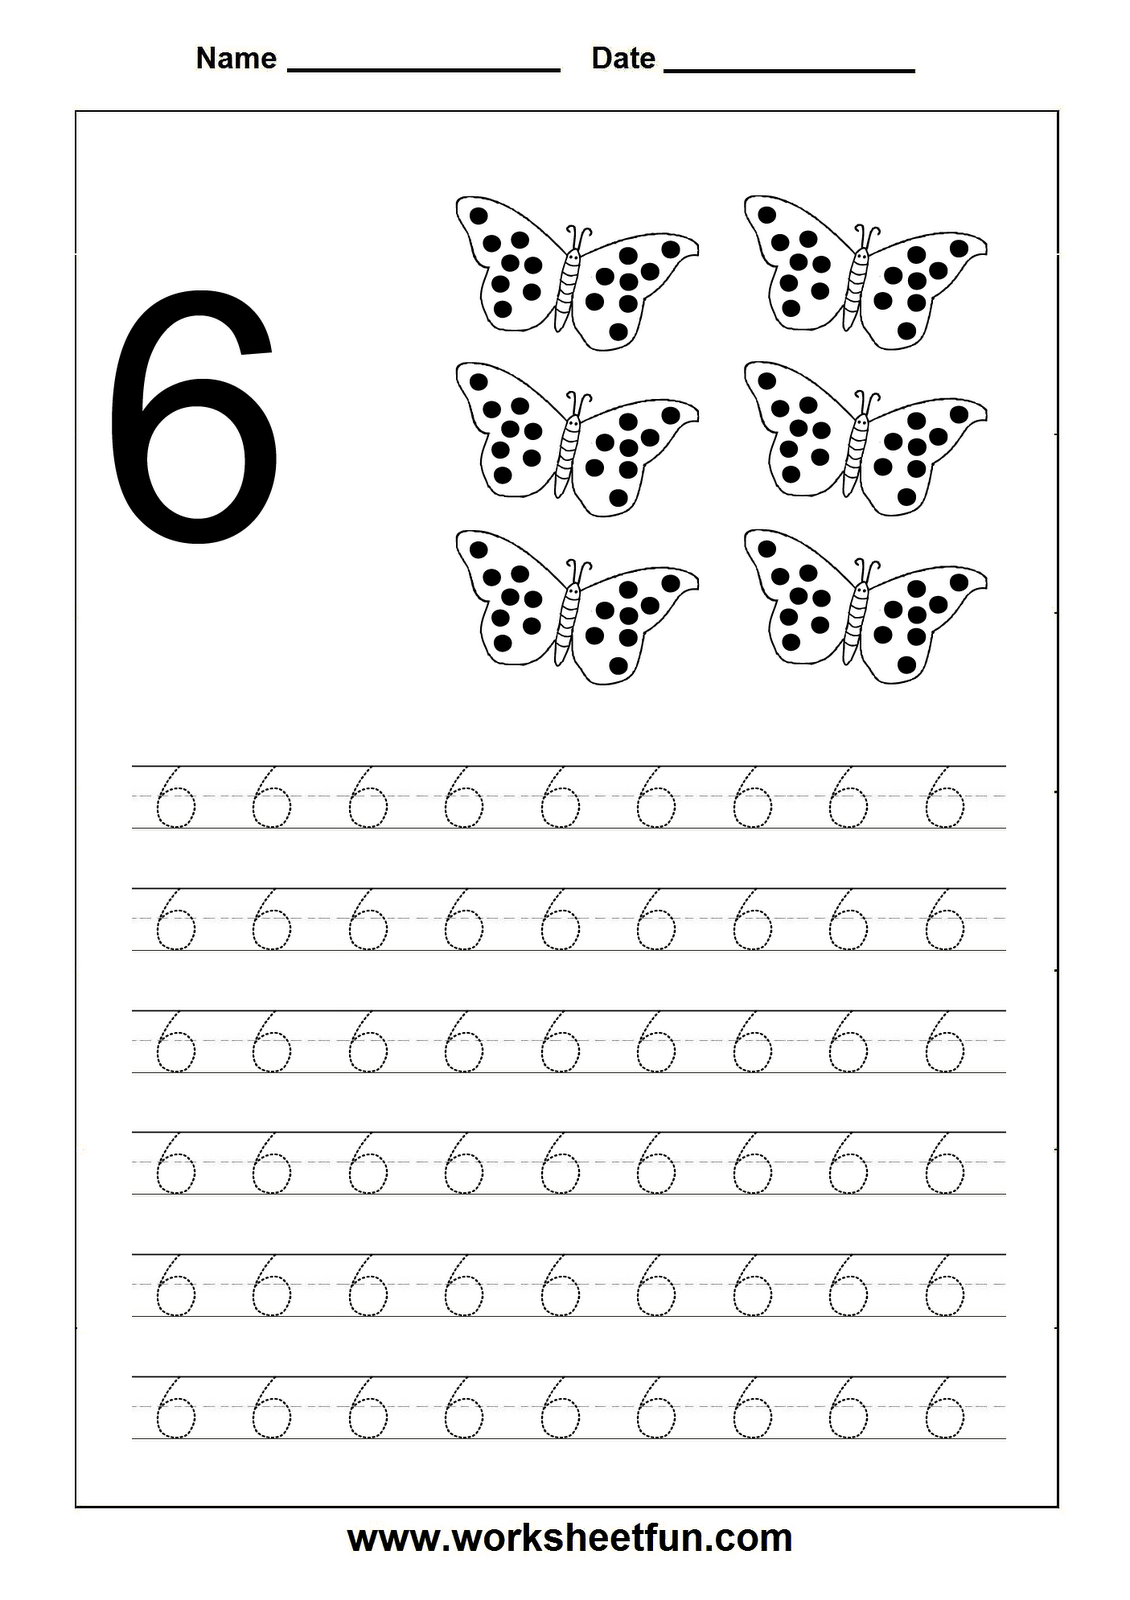 Numbers tracing printables for preschoolers - Number Tracing Worksheet 6